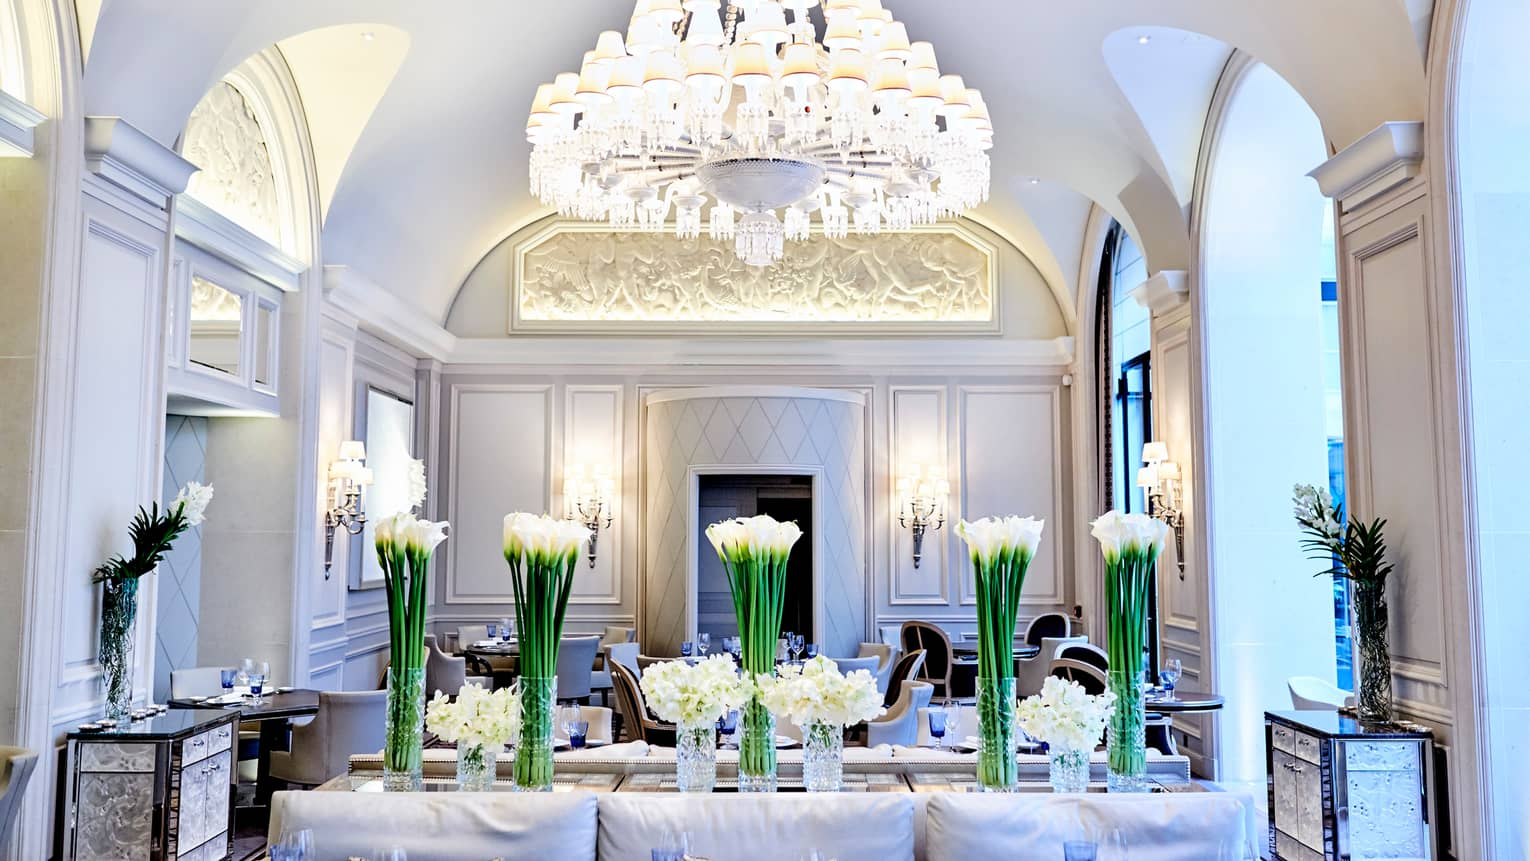 Le George dining room, white flowers in vases under large crystal chandelier